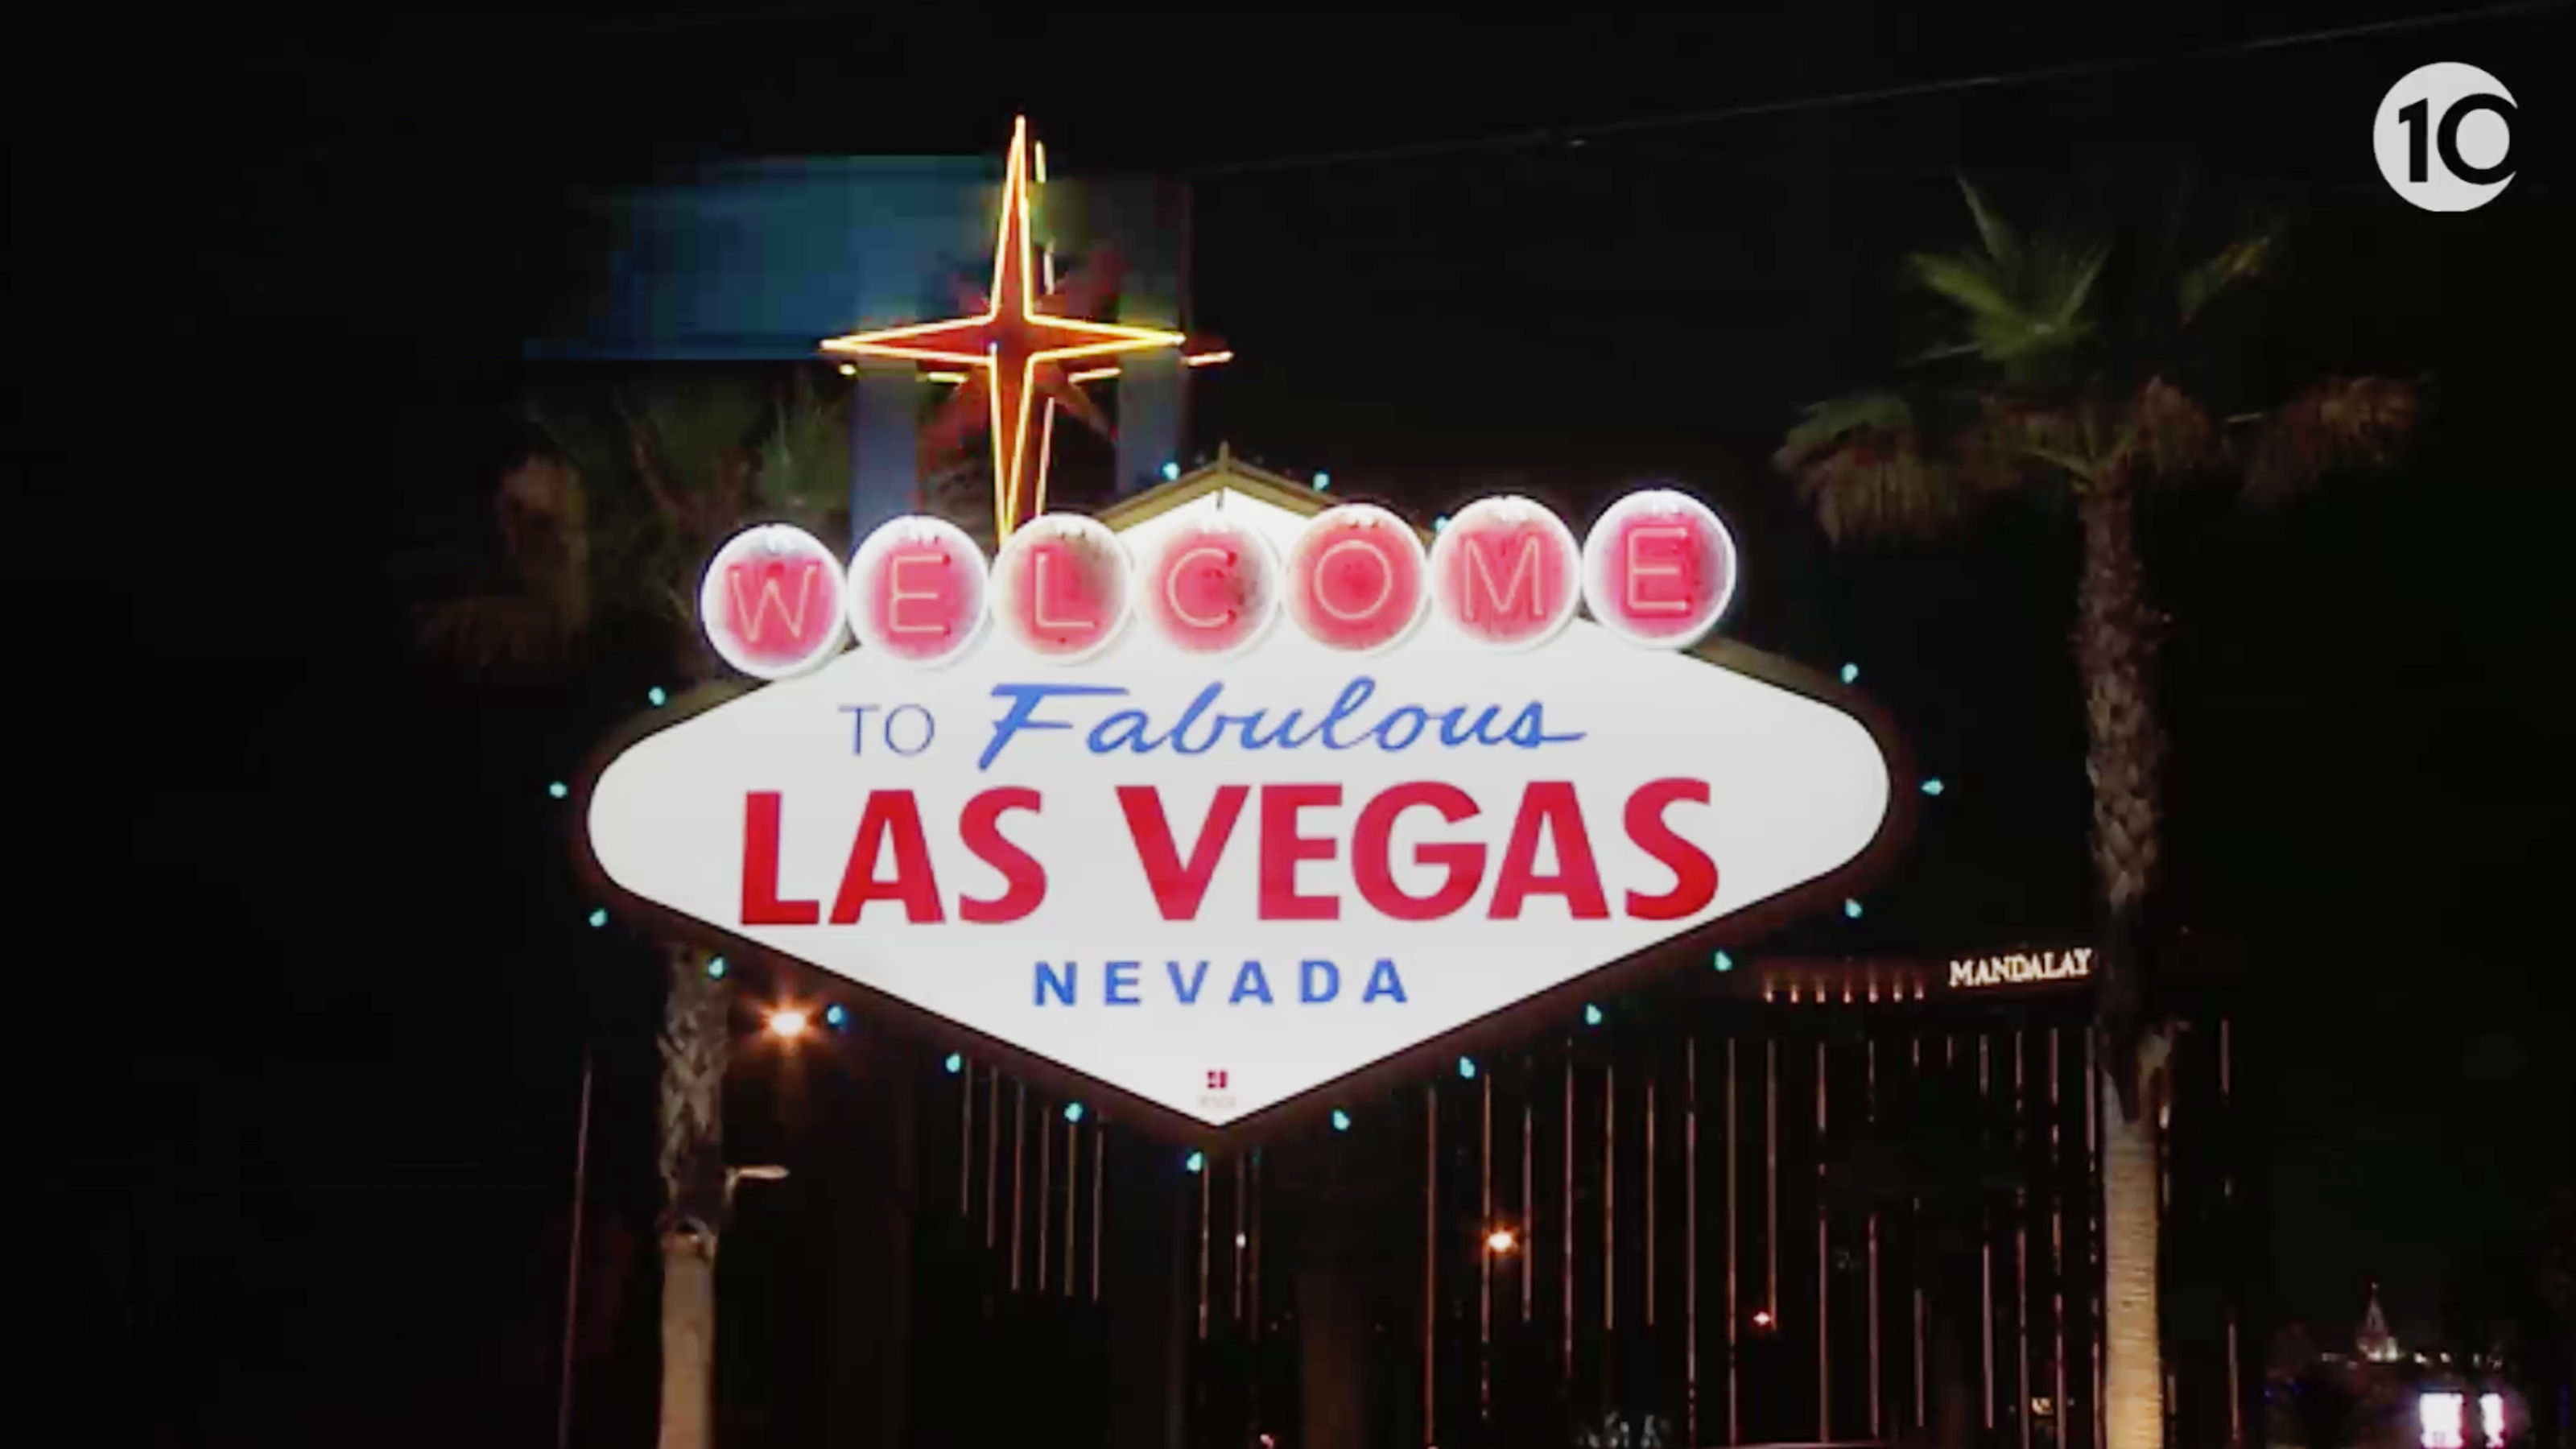 Find a group in Las Vegas